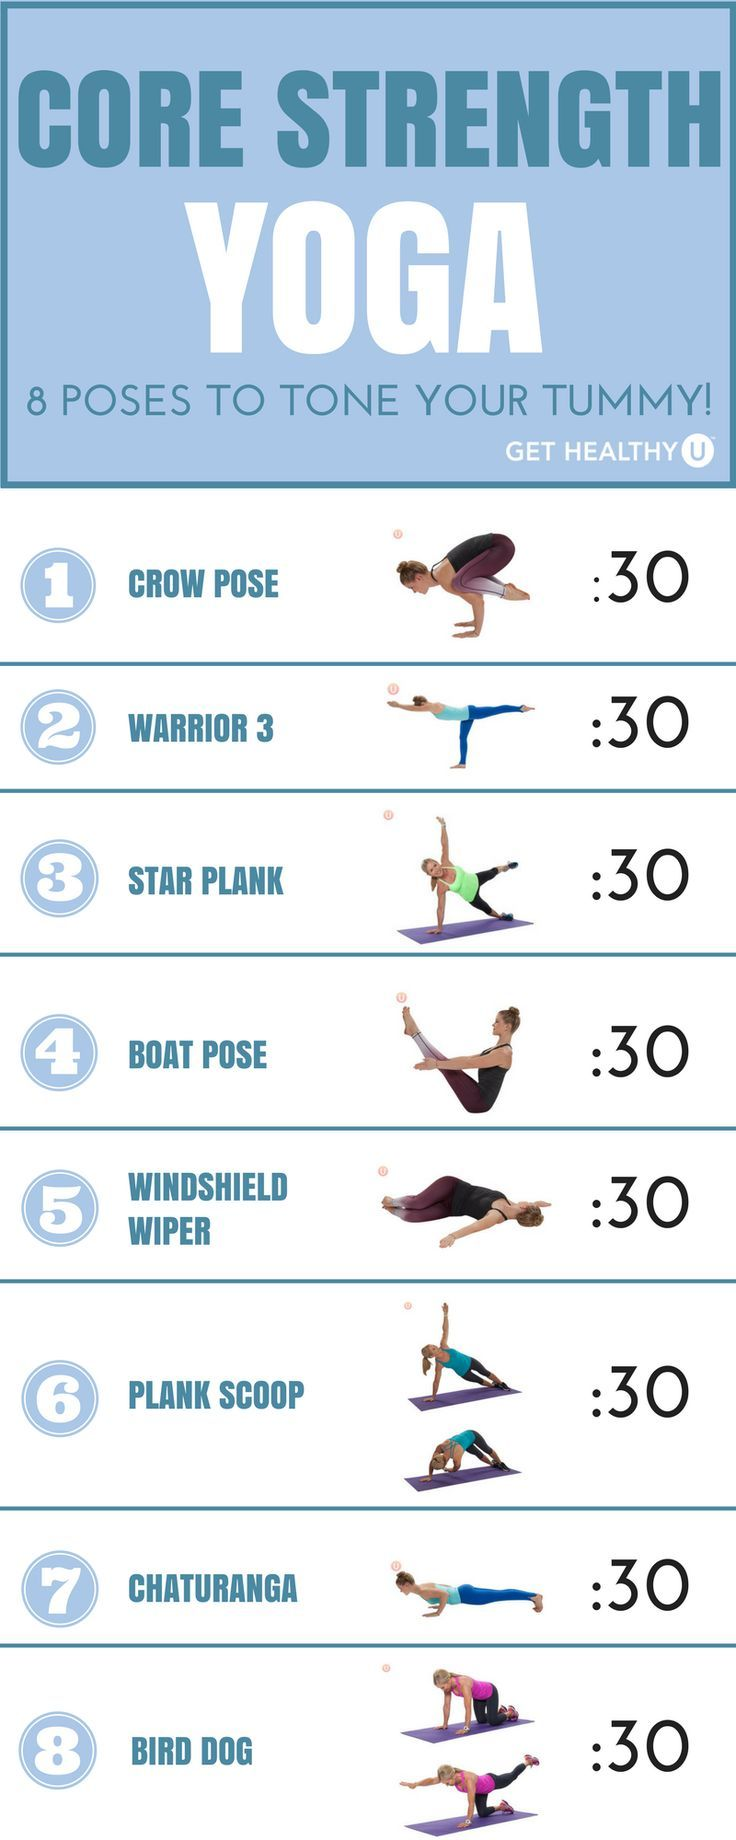 Yoga poses that emphasize core strength. Try them out one at a time, holding eac...